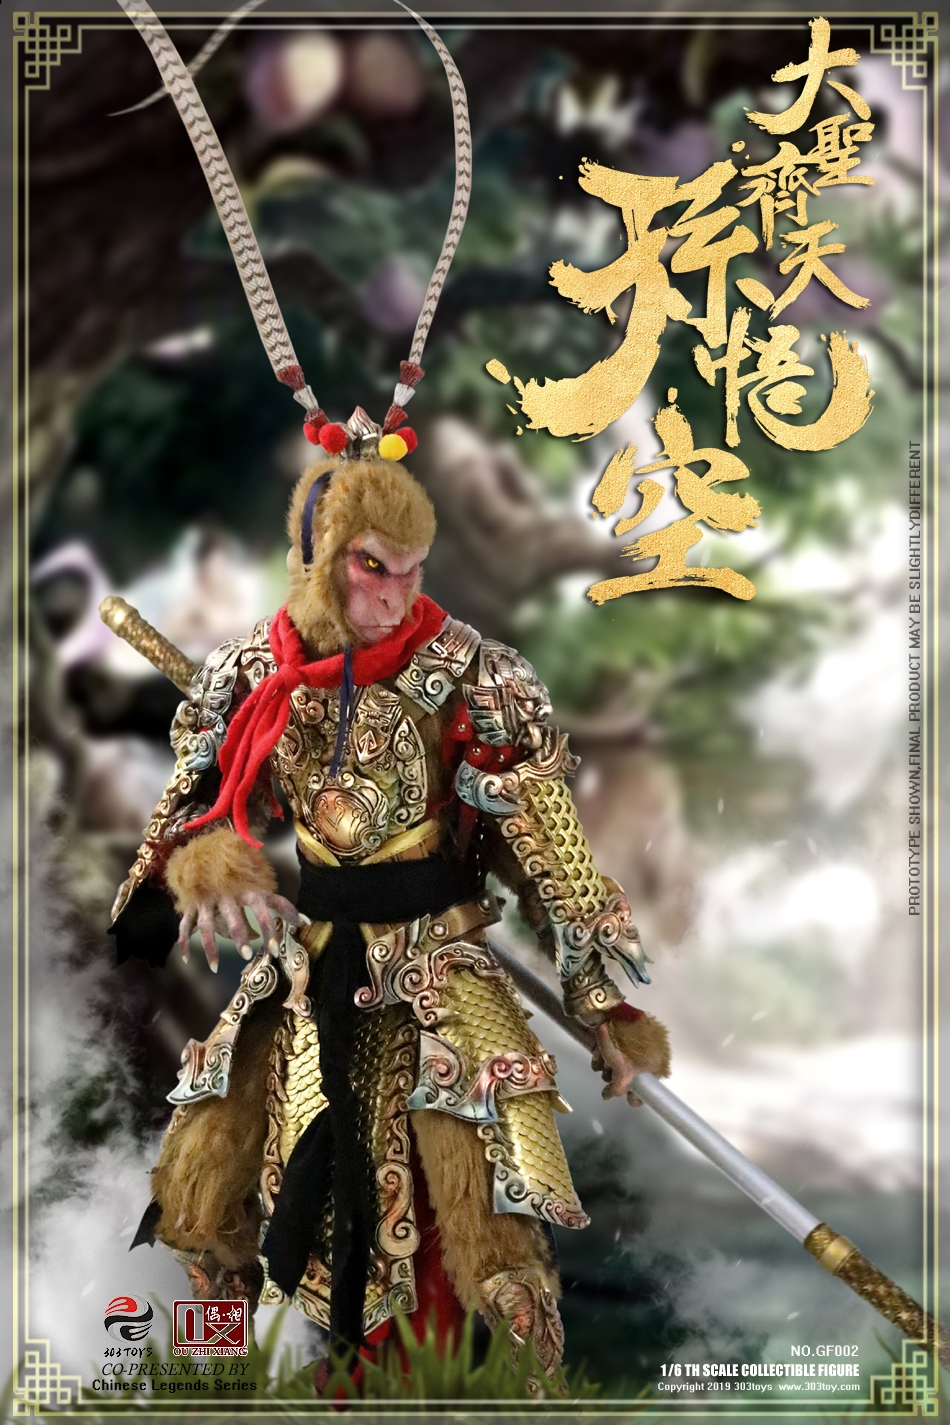 EveningPhase - NEW PRODUCT: 303TOYS x Evening phase: 1/6 National Wind Legend Series - Sun Wukong Monkey King Apocalypse & Dasheng Qitian & Stepping 18090911